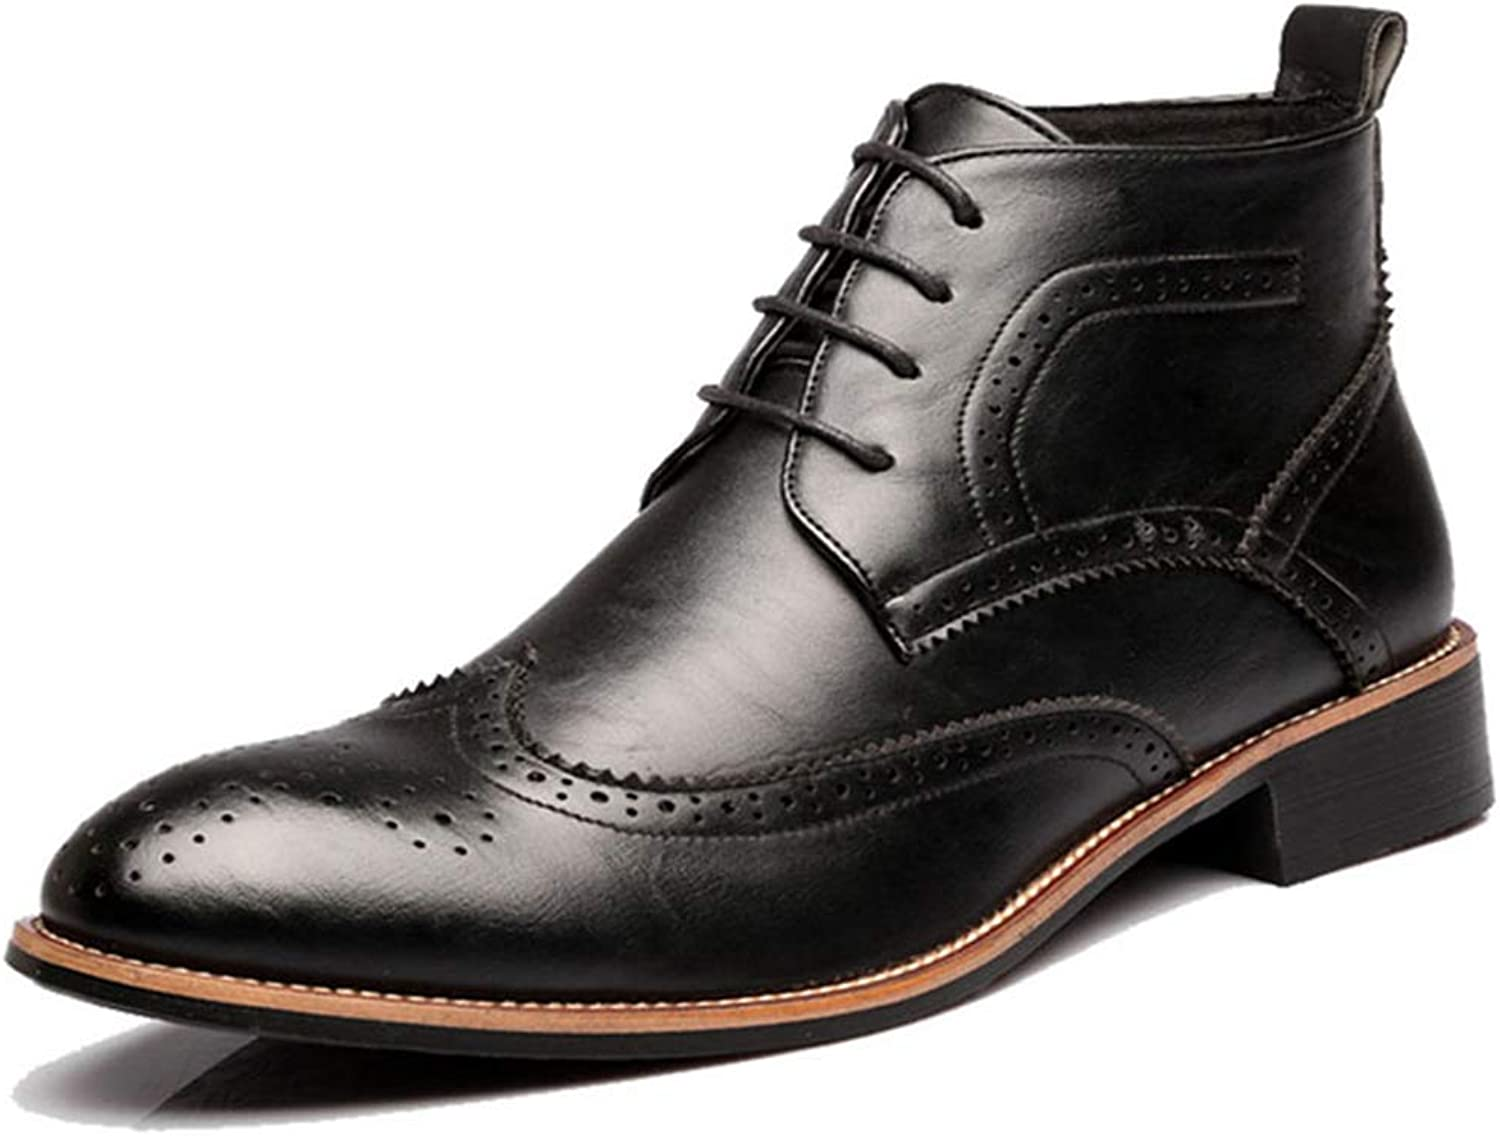 Mens Chelsea Ankle Boots Winter Dress shoes Retro Square Toe Motorcycle Boots Lace-Up Waterproof Warm Leather shoes